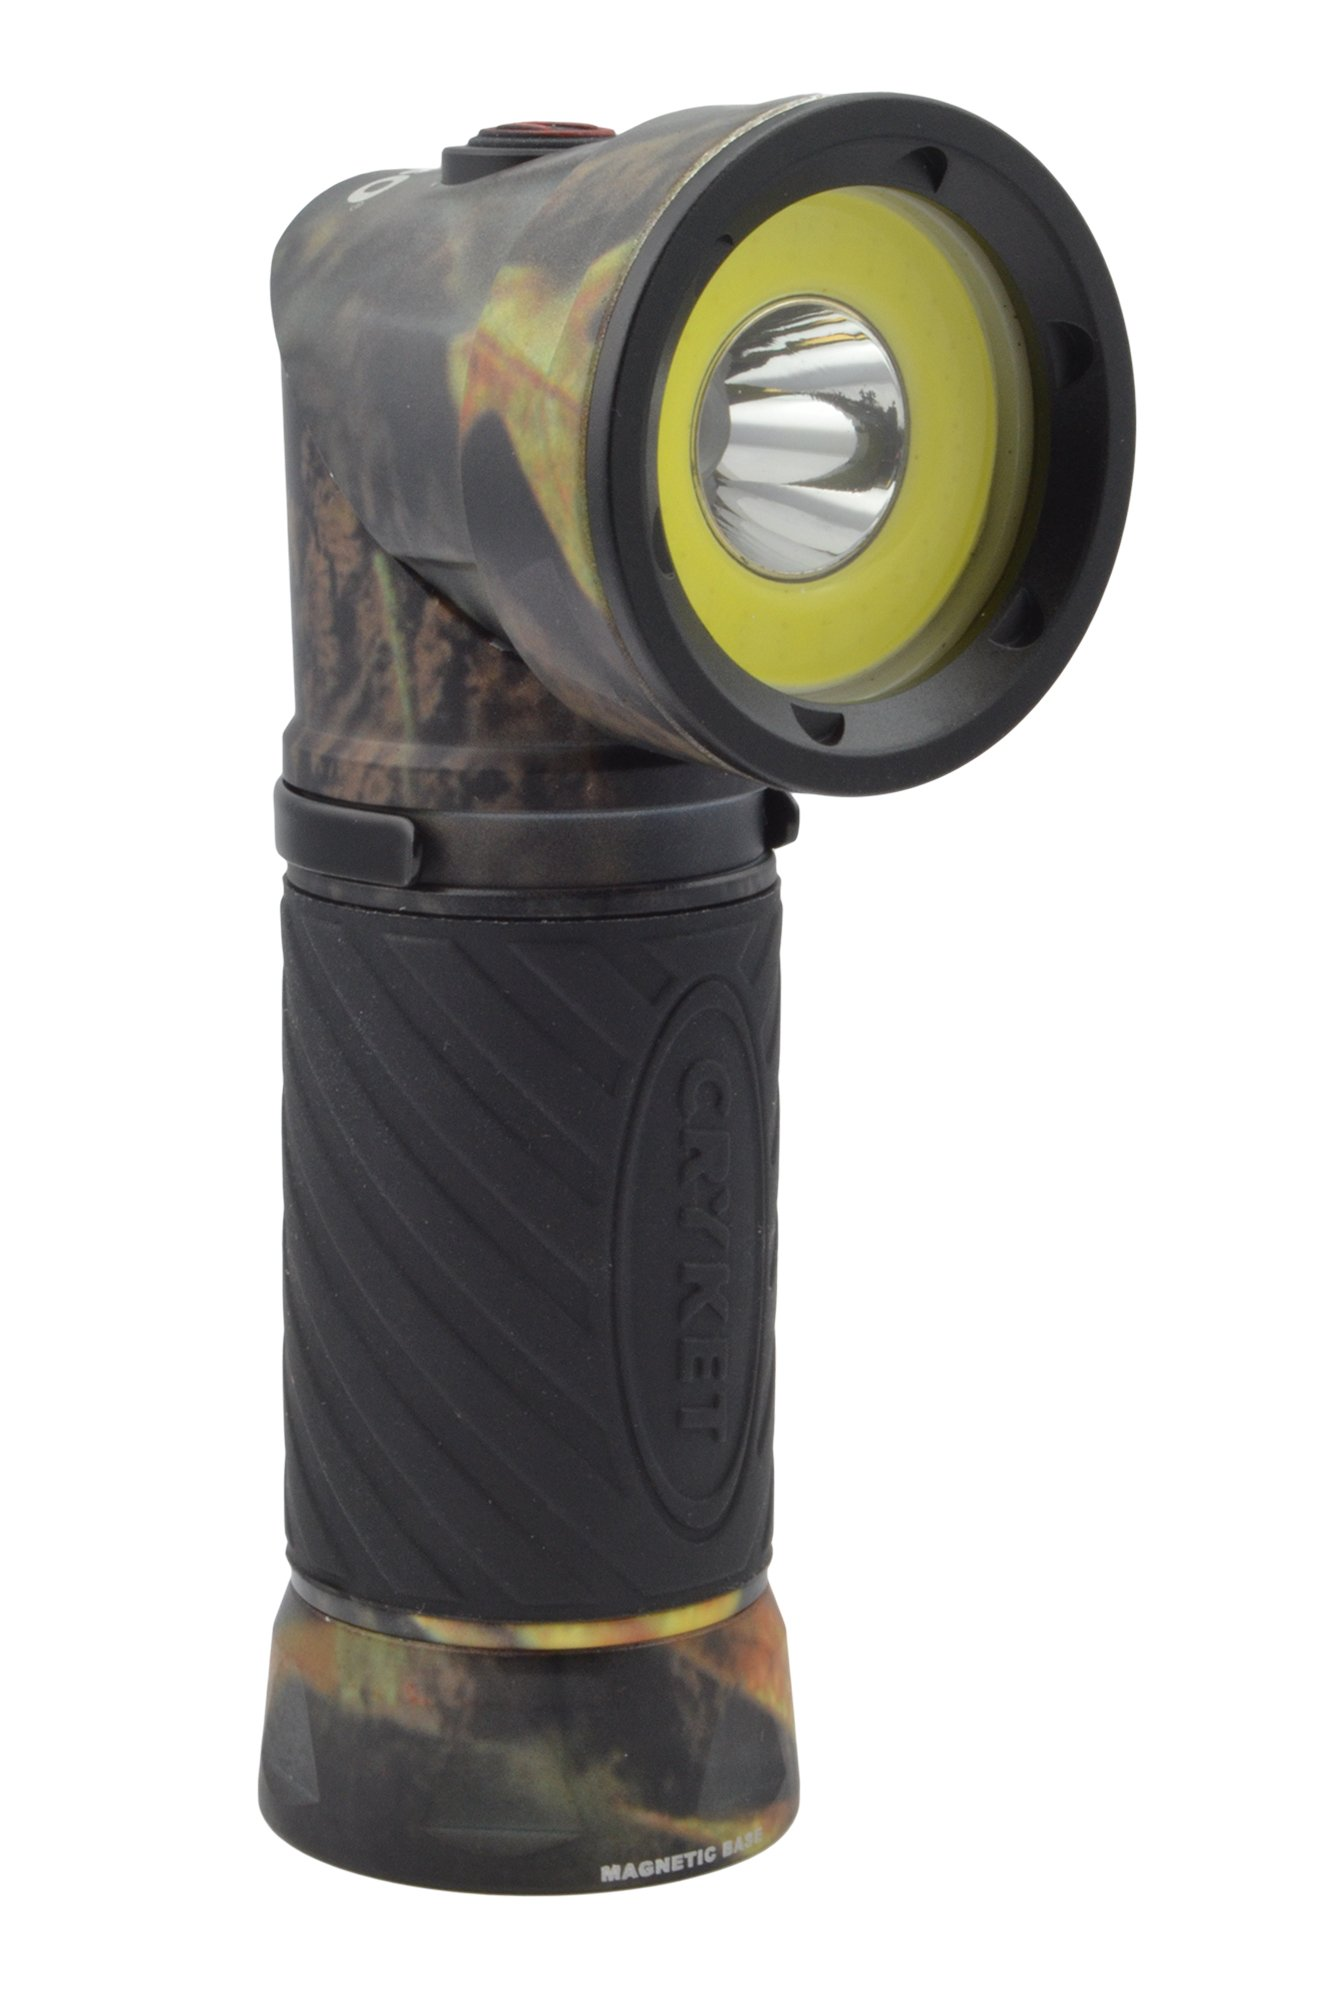 Nebo 6549 Cryket Camo 3-in-1 LED Flashlight/Work Light/Green LED with 8 Nebo AAA Batteries and Lumintrail Keychain Light by NEBO (Image #2)